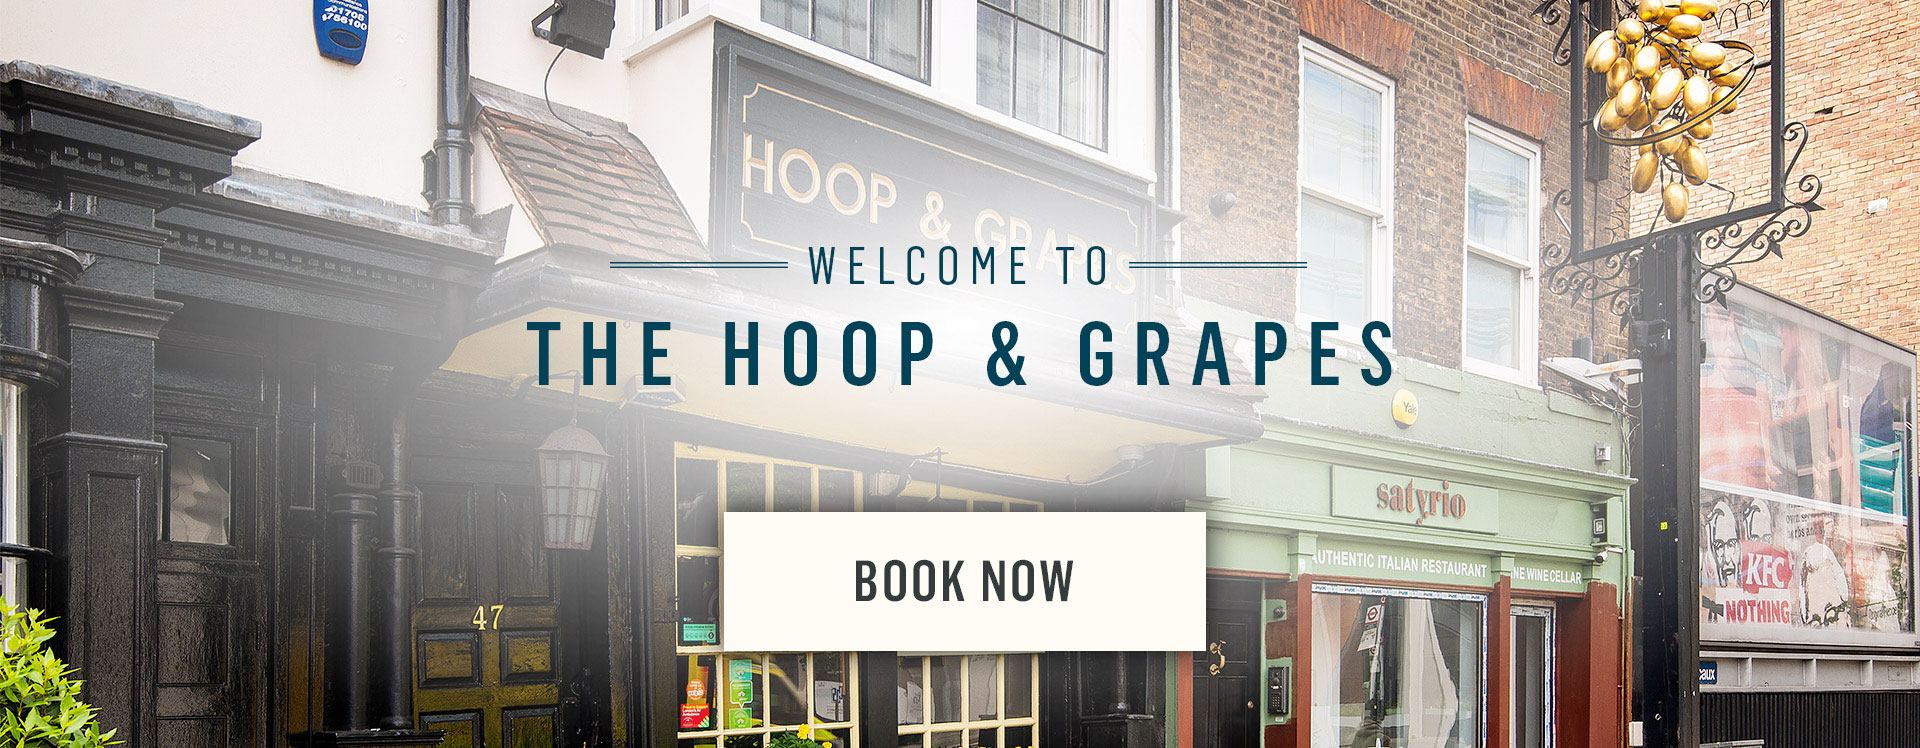 Welcome to The Hoop and Grapes - Book Now